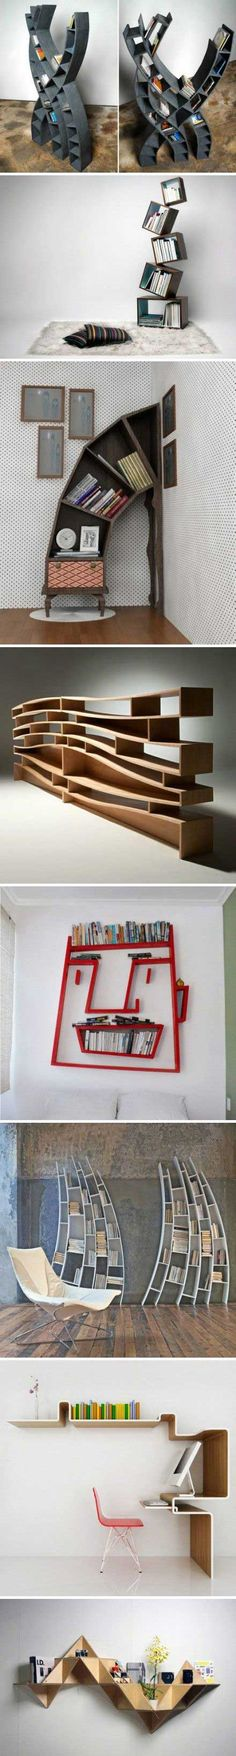 Unique DIY Book Shelf Ideas